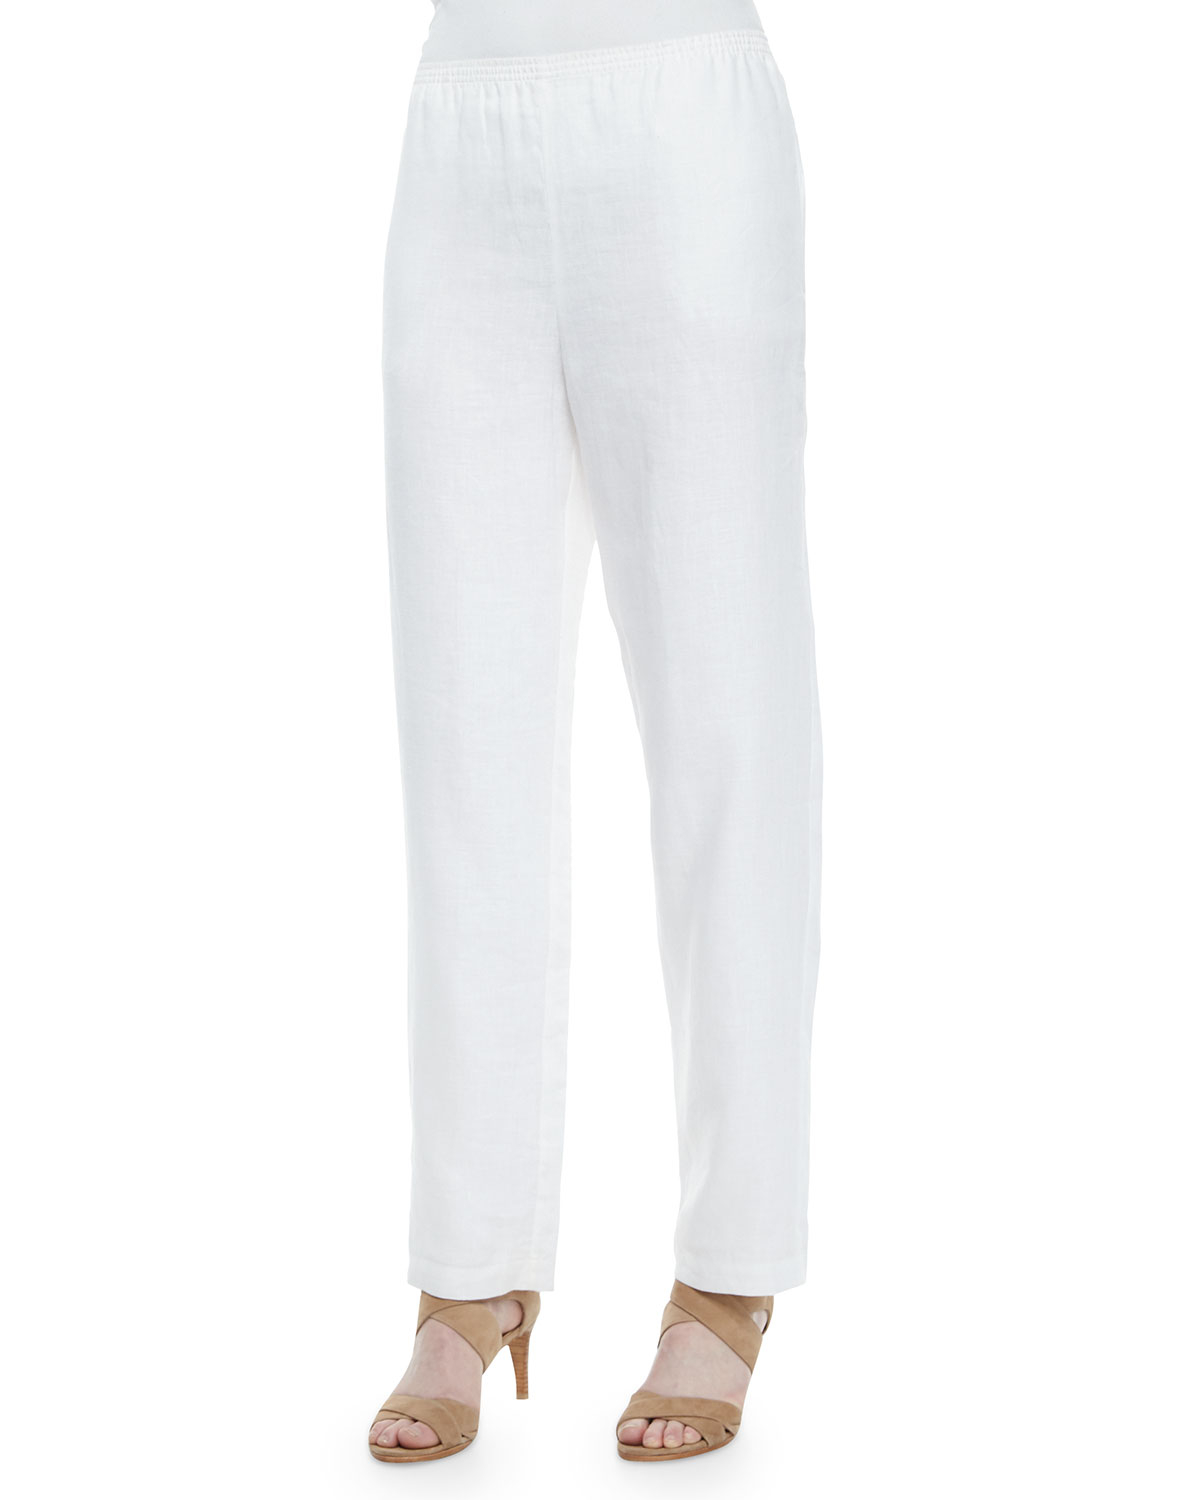 Cool  Dourada Pants  Cotton Twill Straight Leg For Women  Save 46